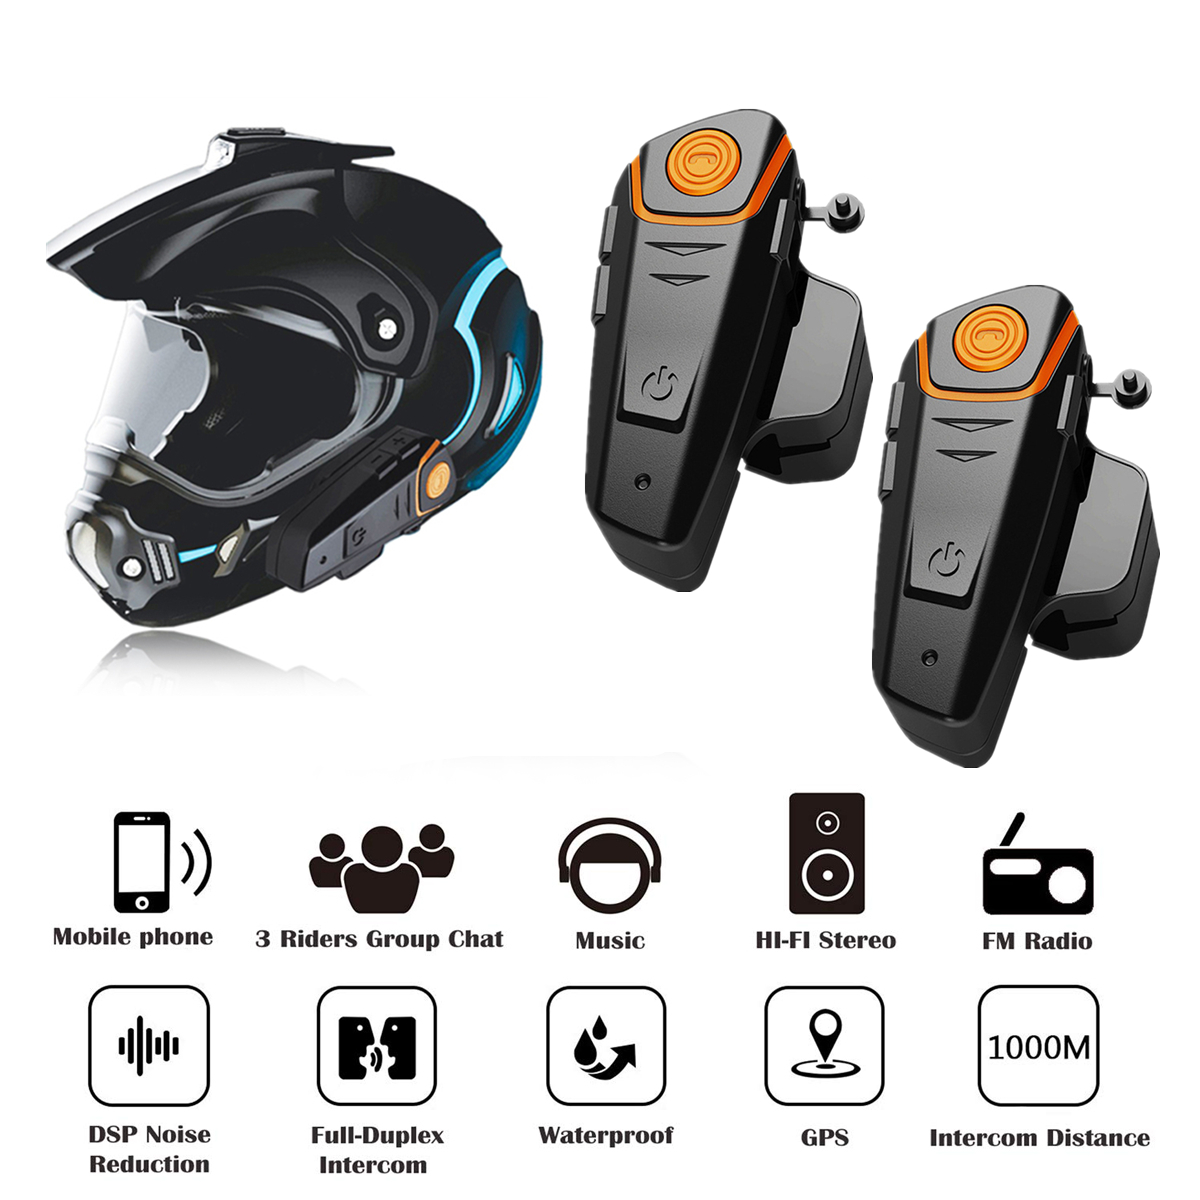 Bluetooth Helmet Headset Intercom Moto Fm-Radio Waterproof Bt-S2 pro Wireless 2pieces